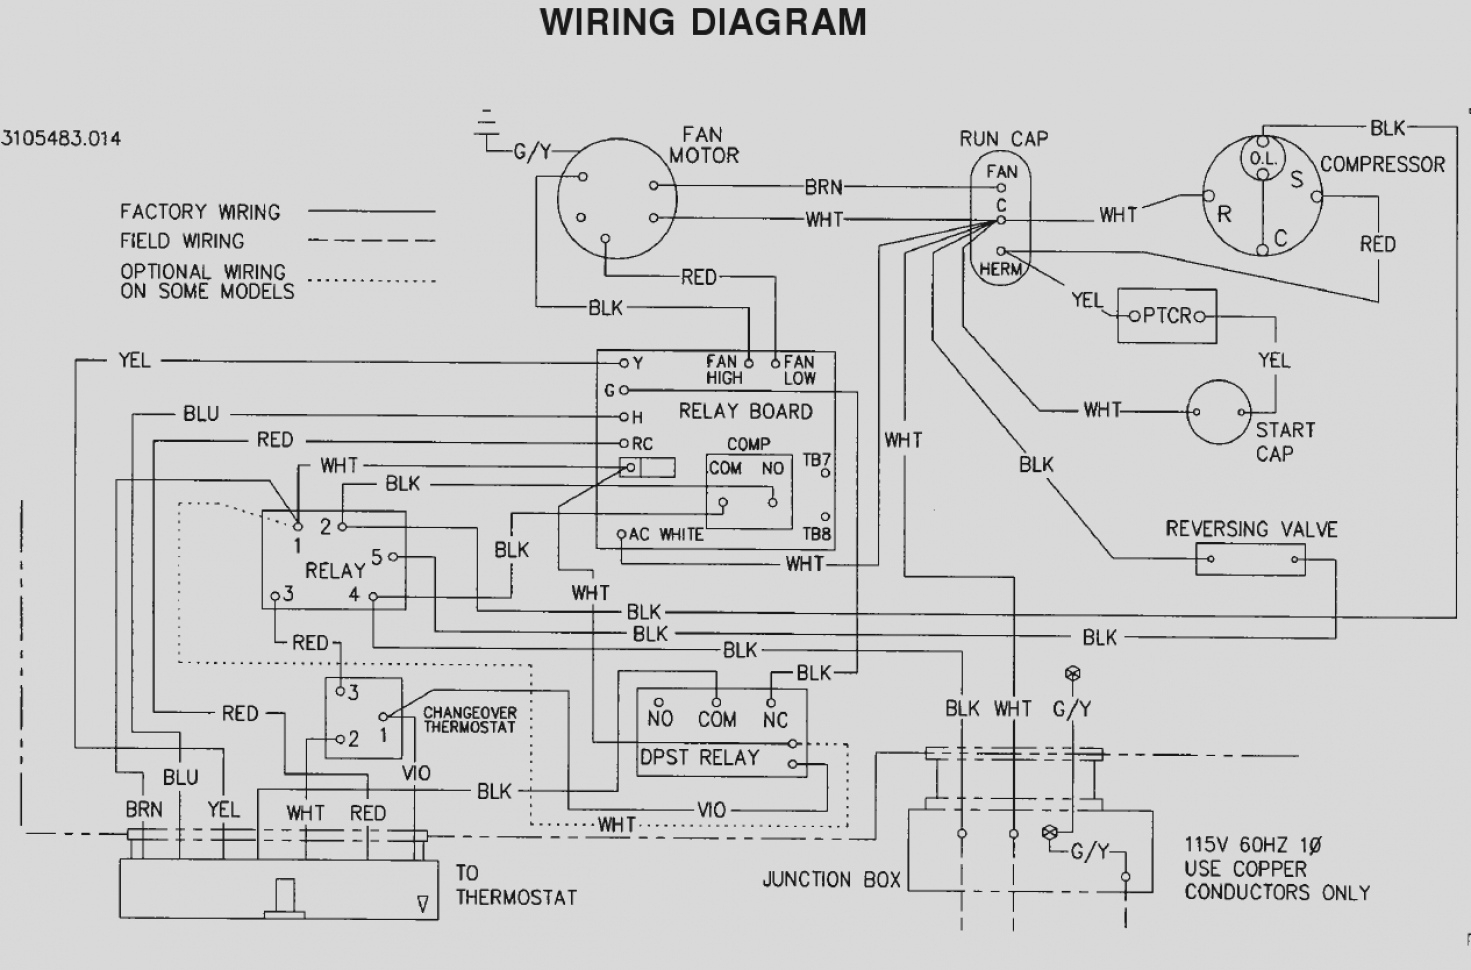 Programmable Thermostat Wiring Diagram from wholefoodsonabudget.com